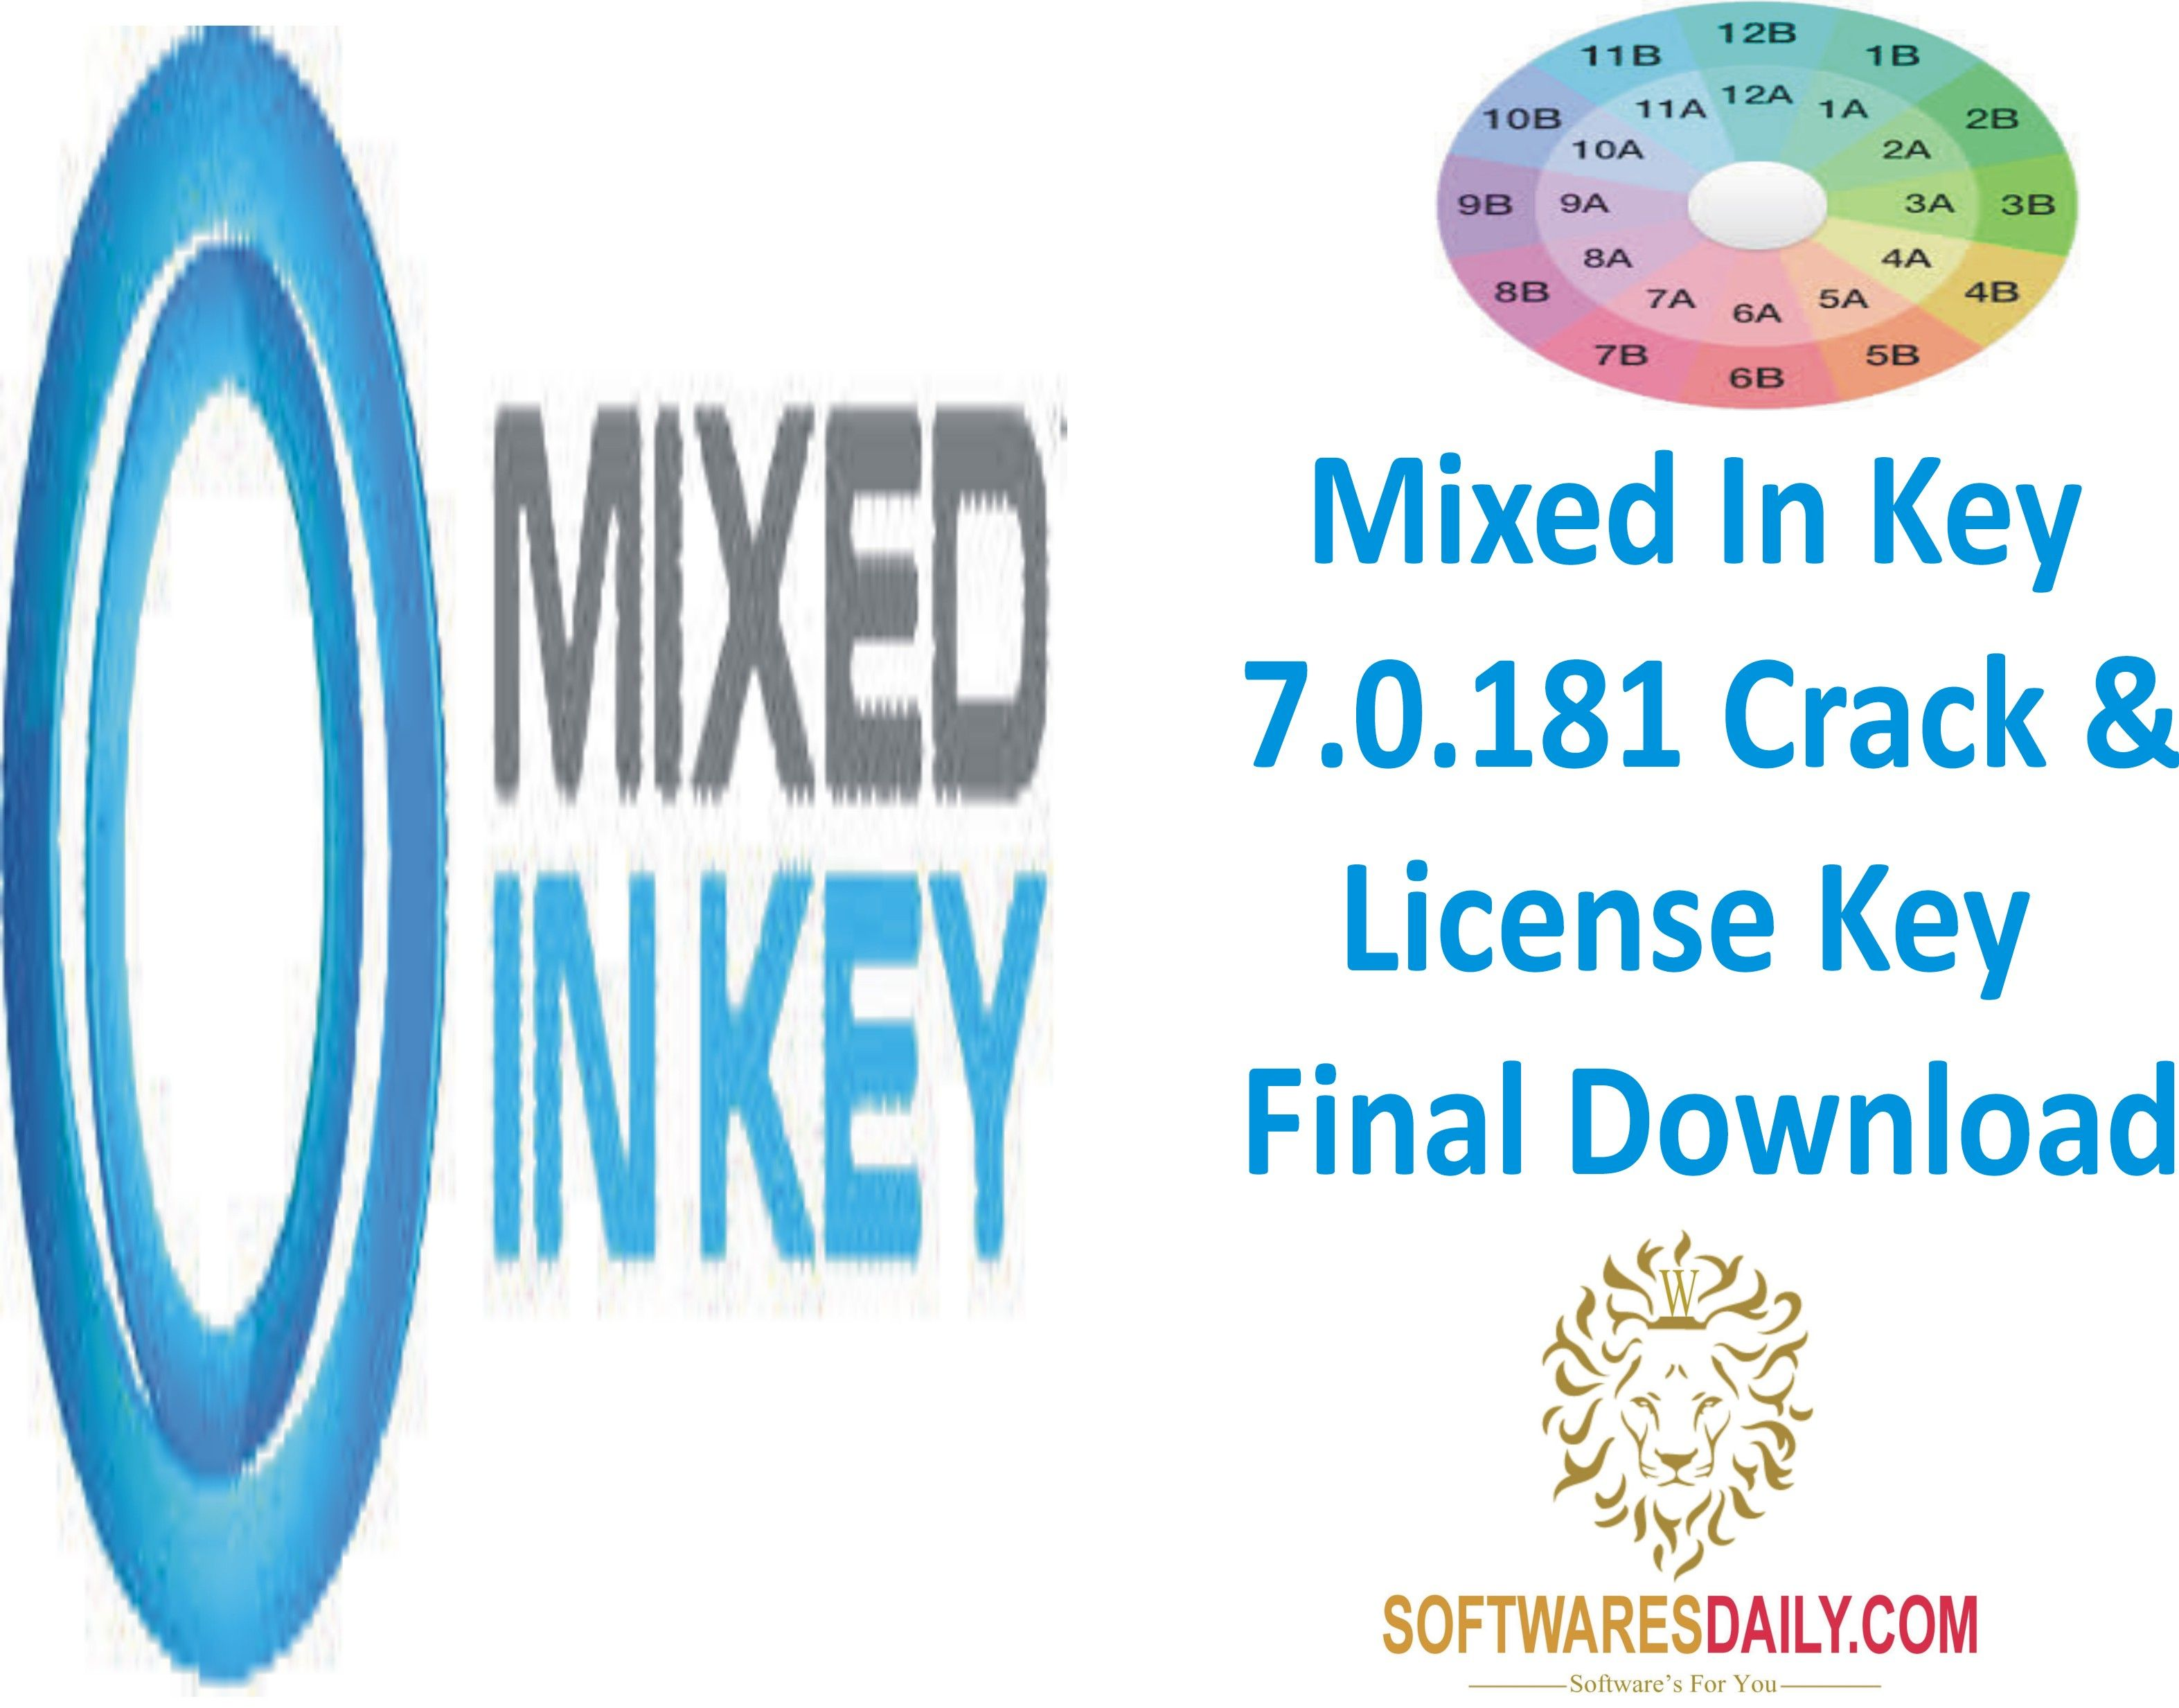 Mixed In Key 7.0.181 Crack & License Key Final Download,Mixed In Key 7.0.181 Crack & License,Mixed In Key 7.0.181 Key Final Download........................